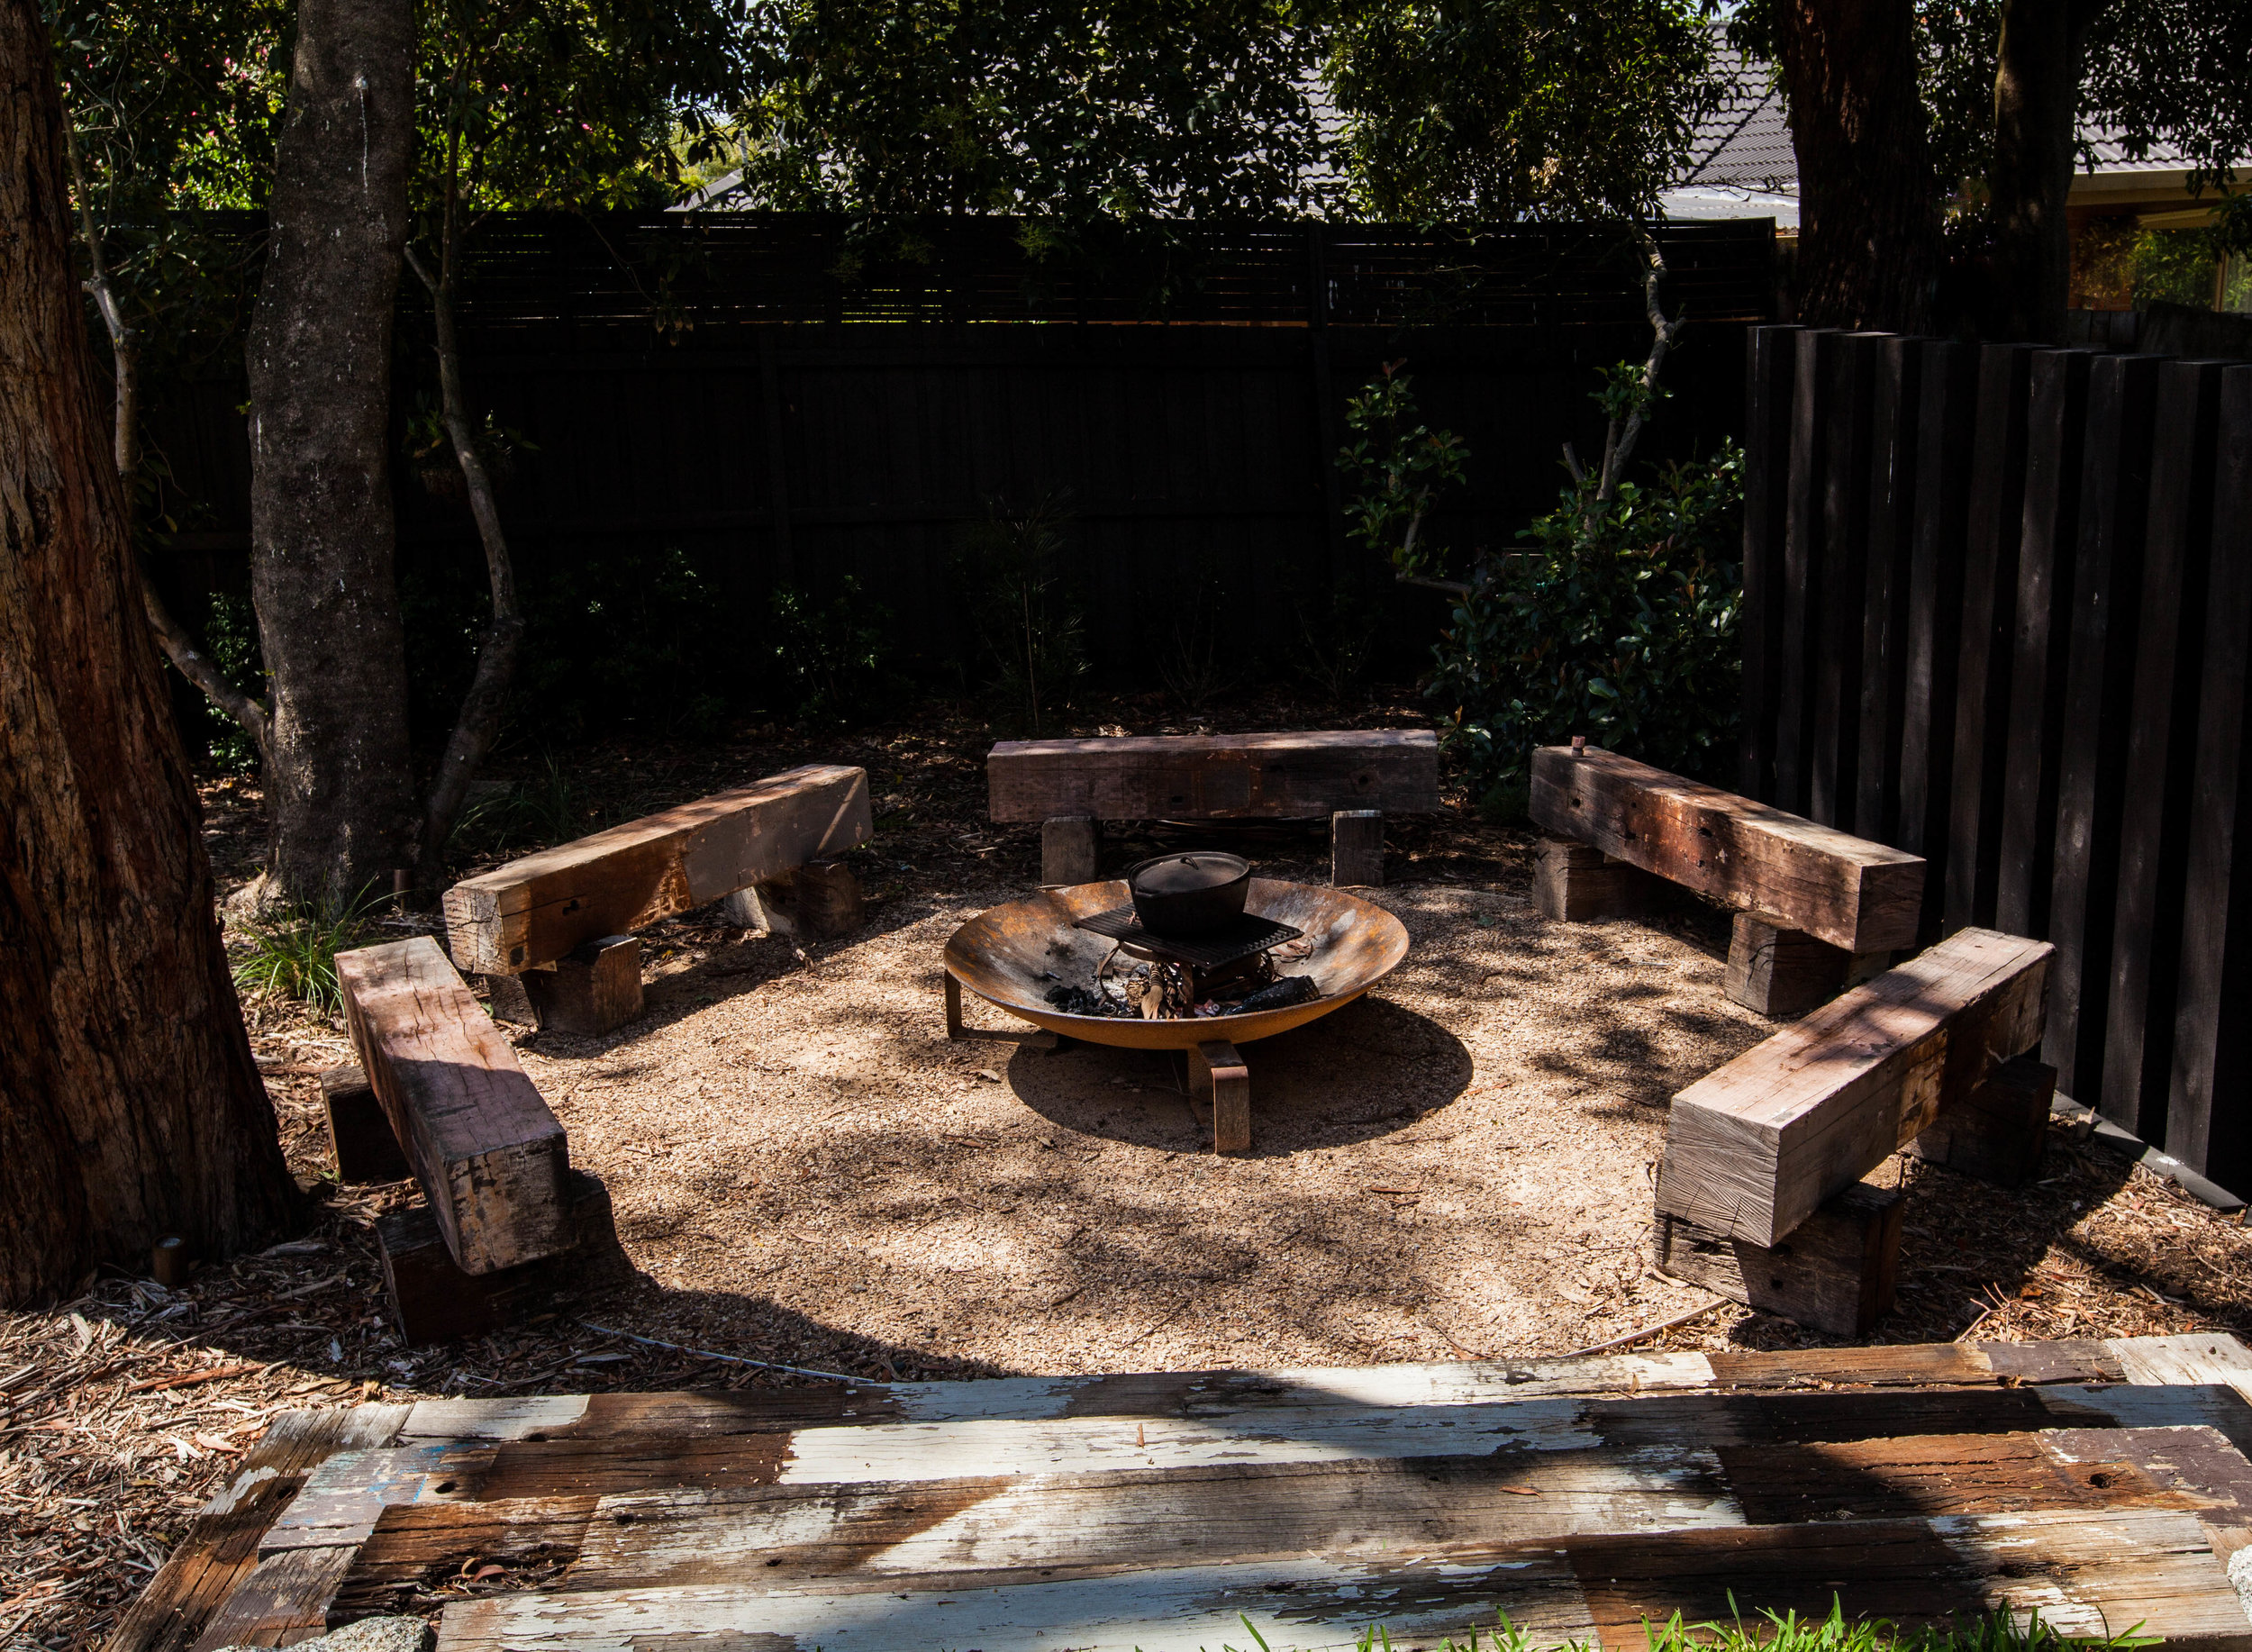 AFTER: The sunken 'campfire lounge' seating area, where smaller groups can site and chat over a crackling fire.